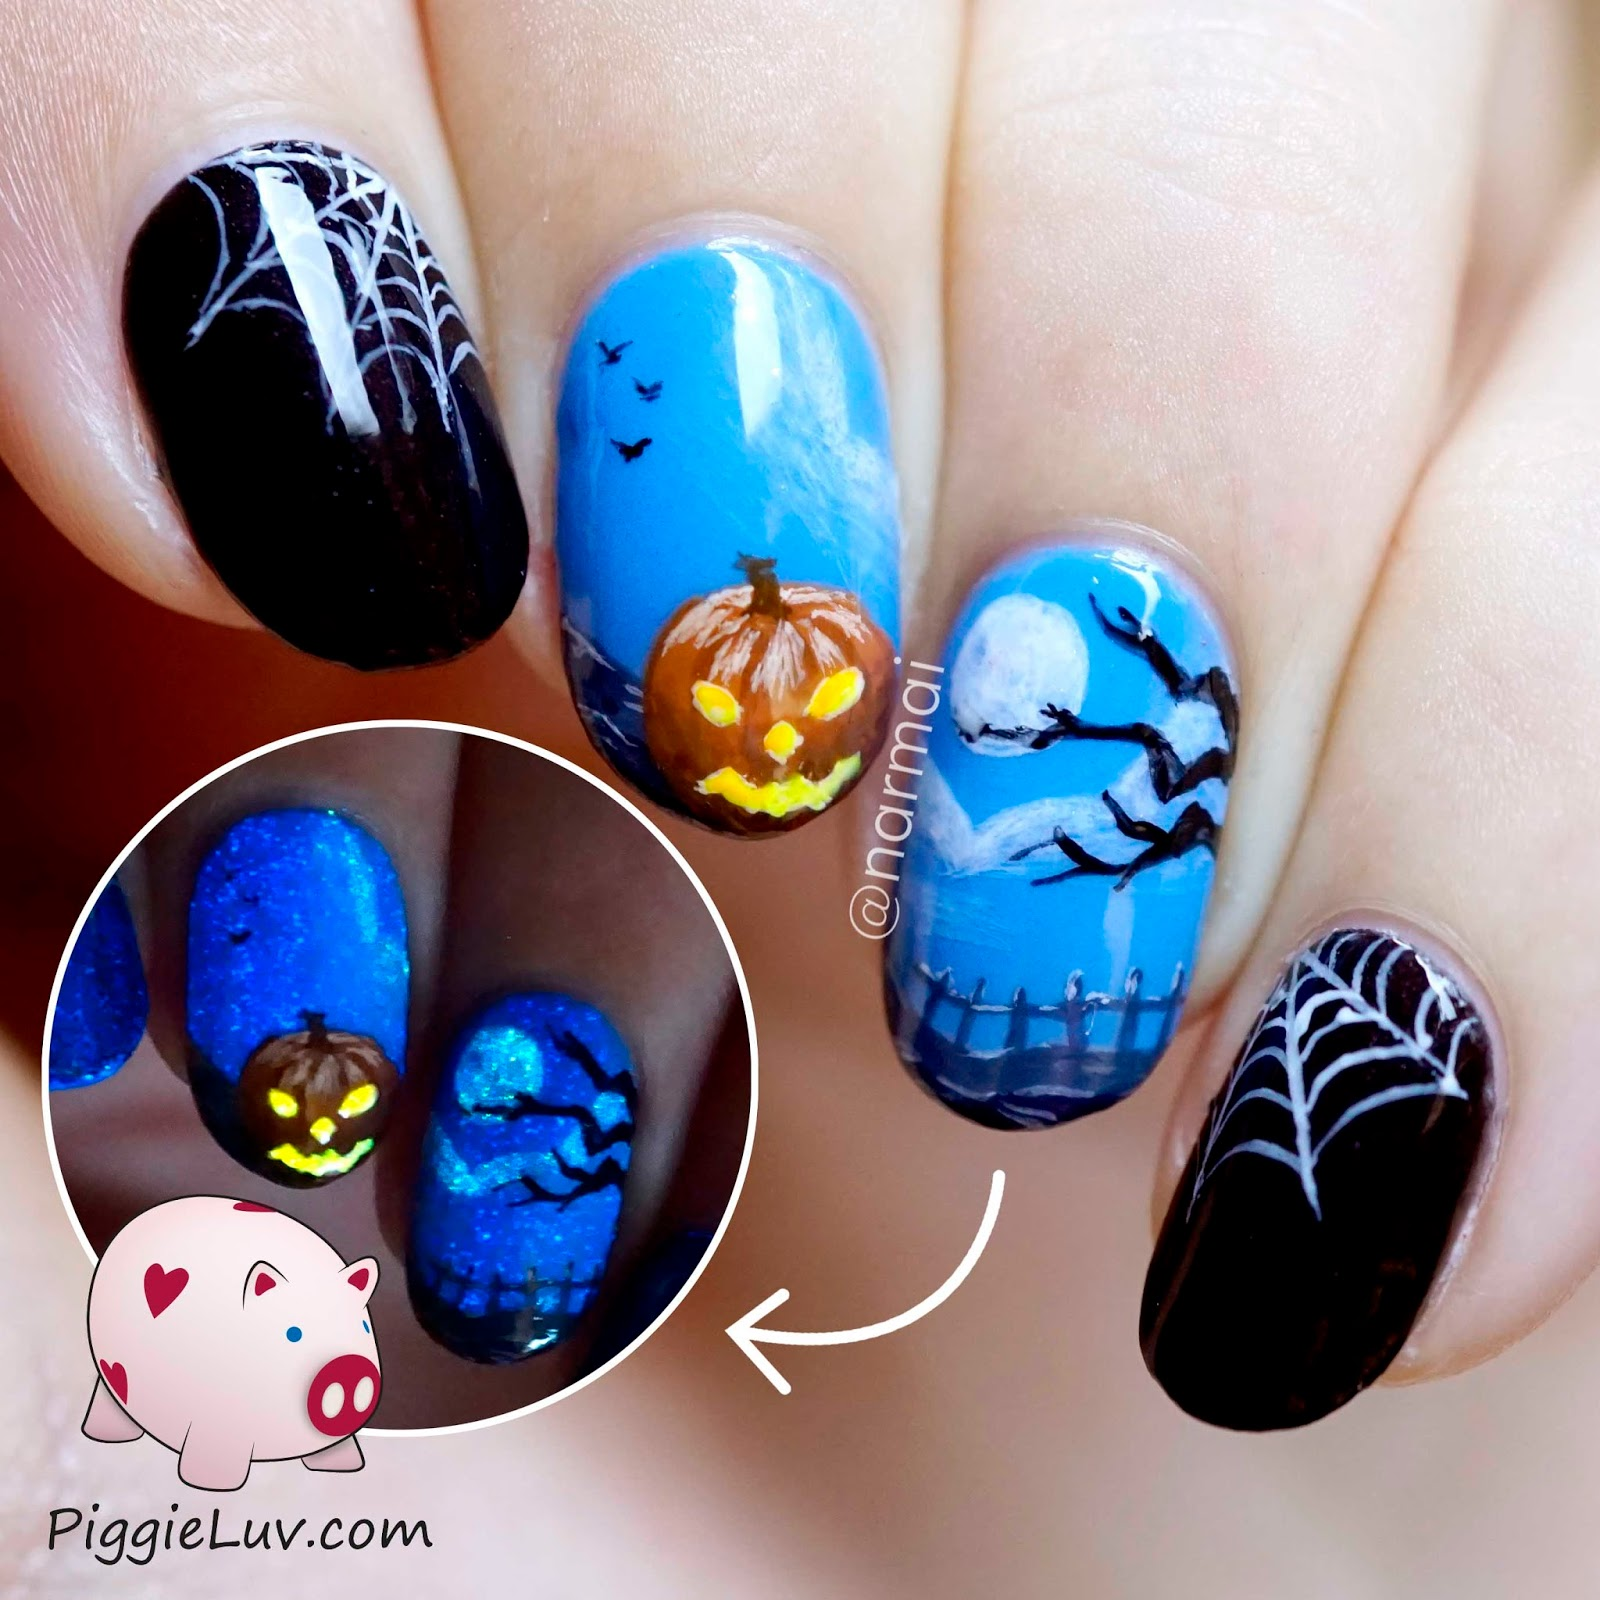 PiggieLuv: Happy Halloween nail art - HPB linkup